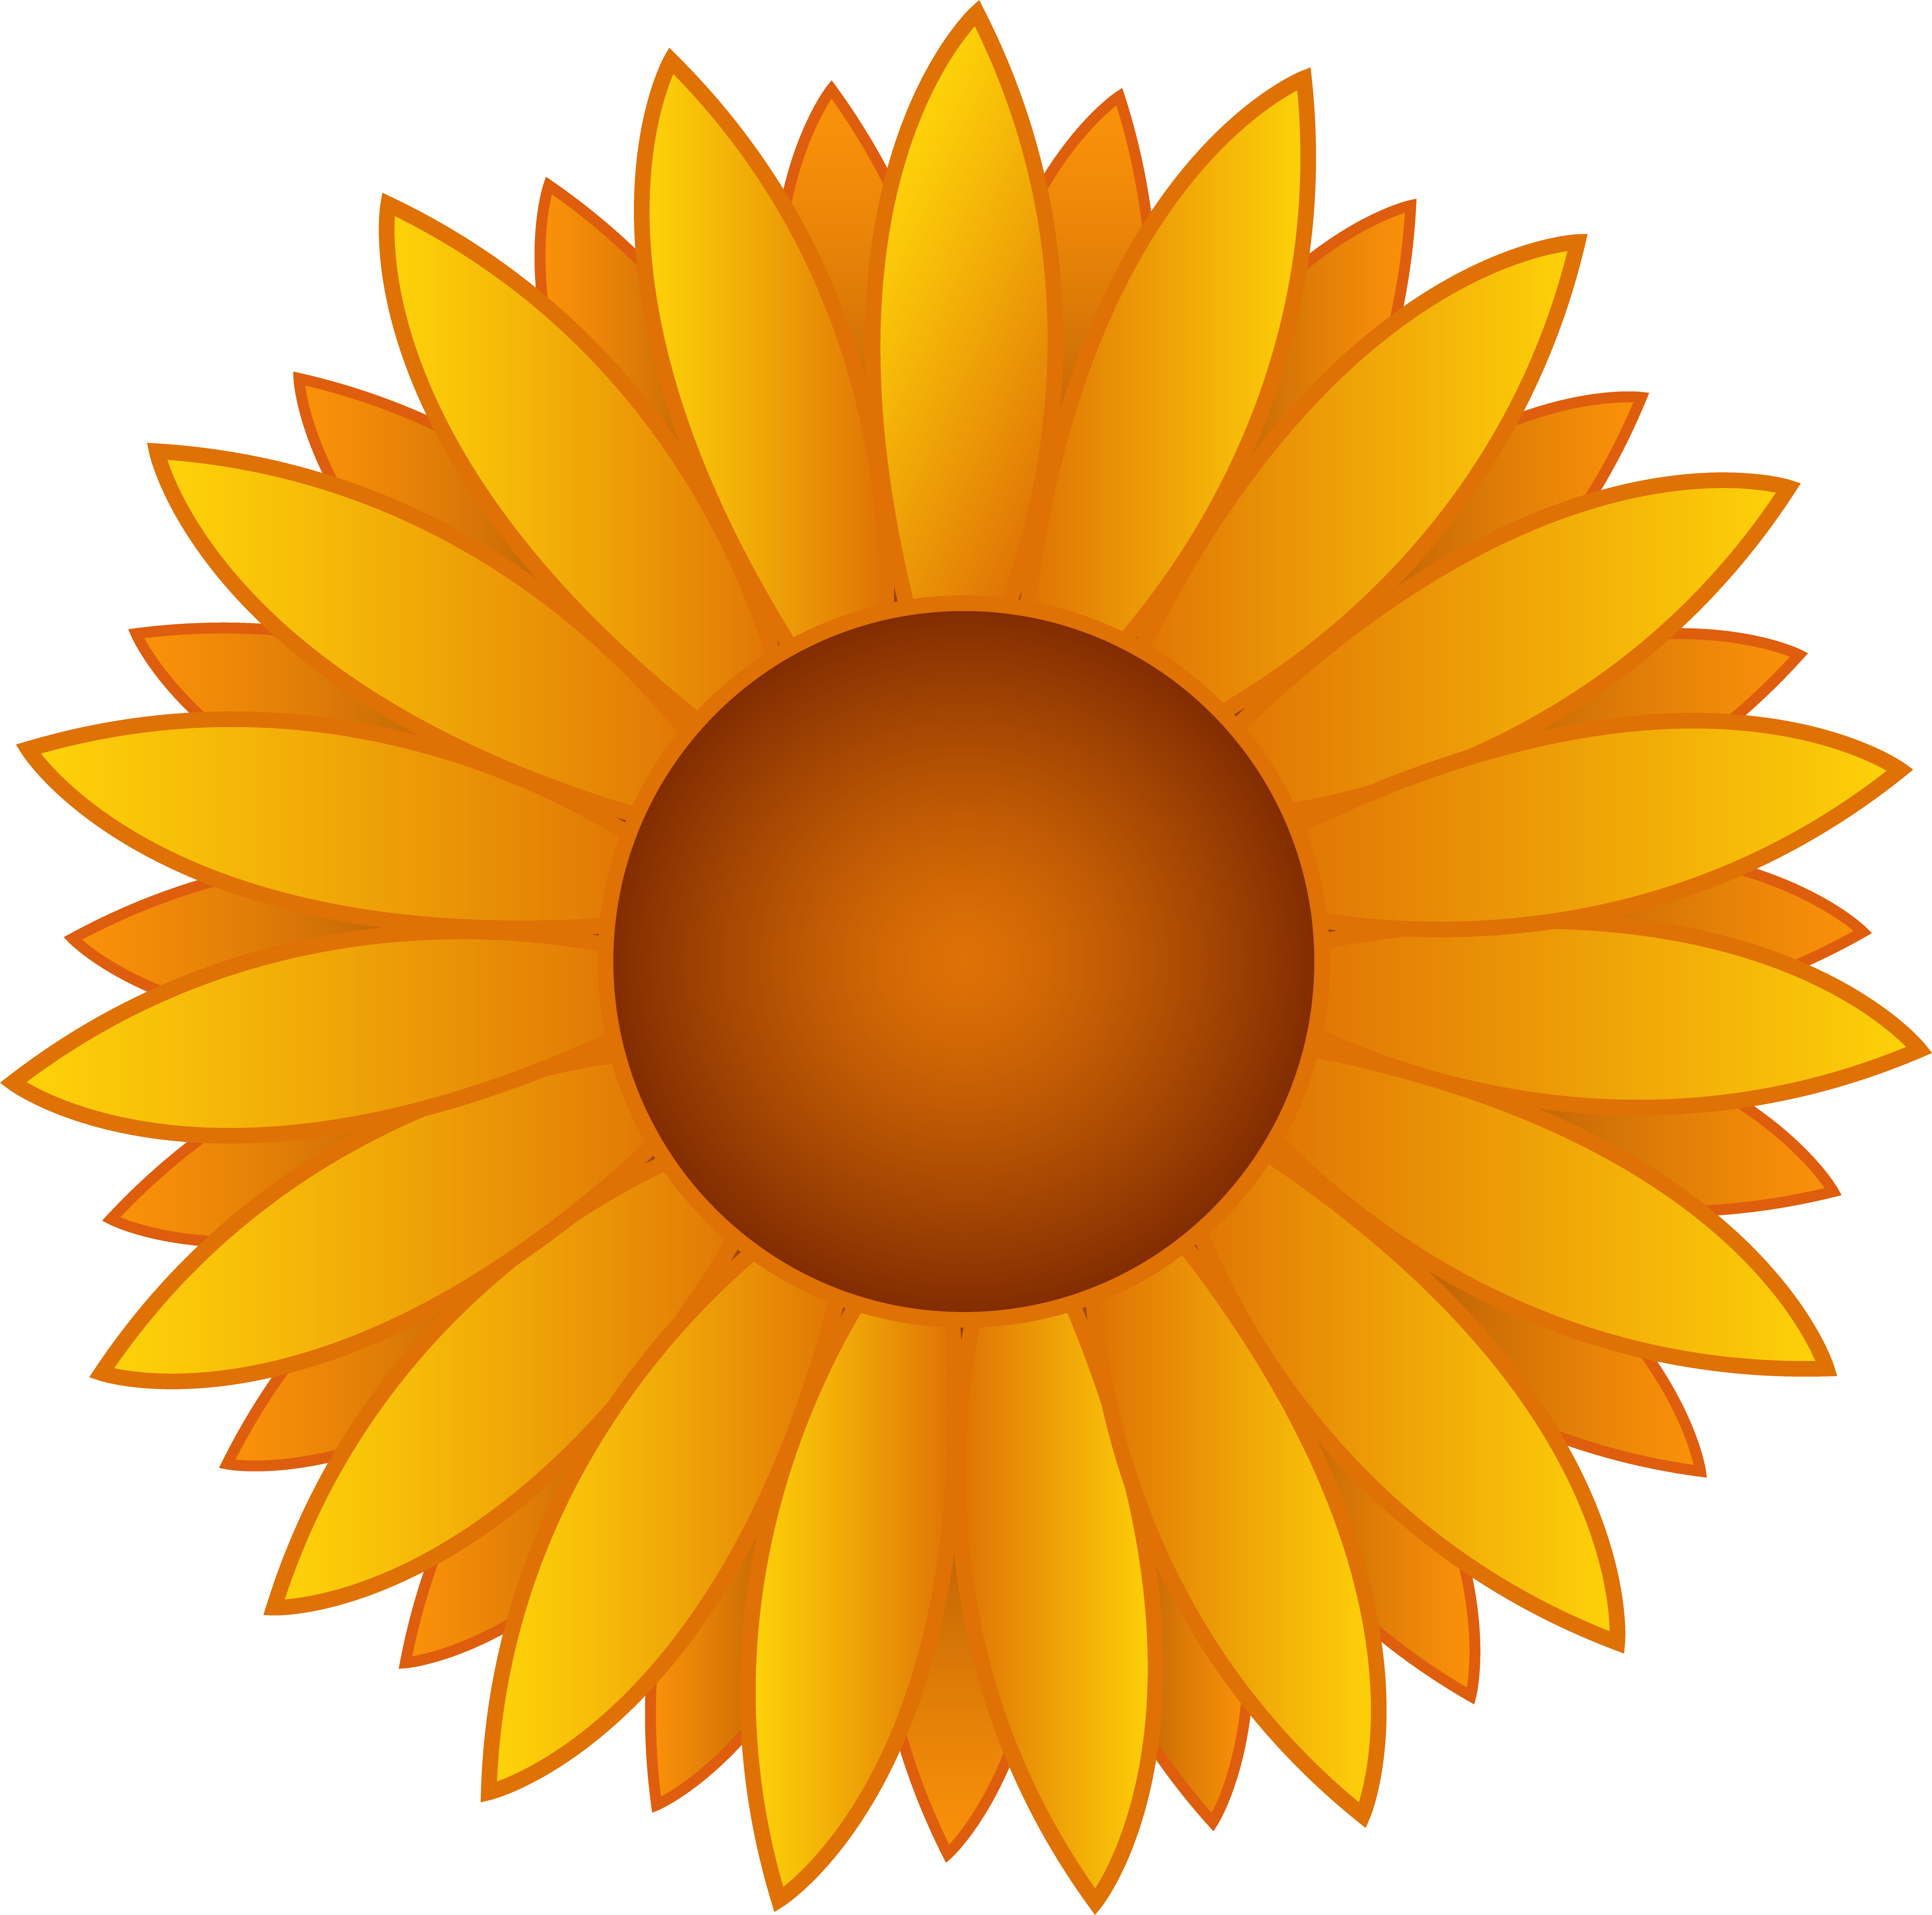 Sunflower clip art free printable clipart panda free clipart